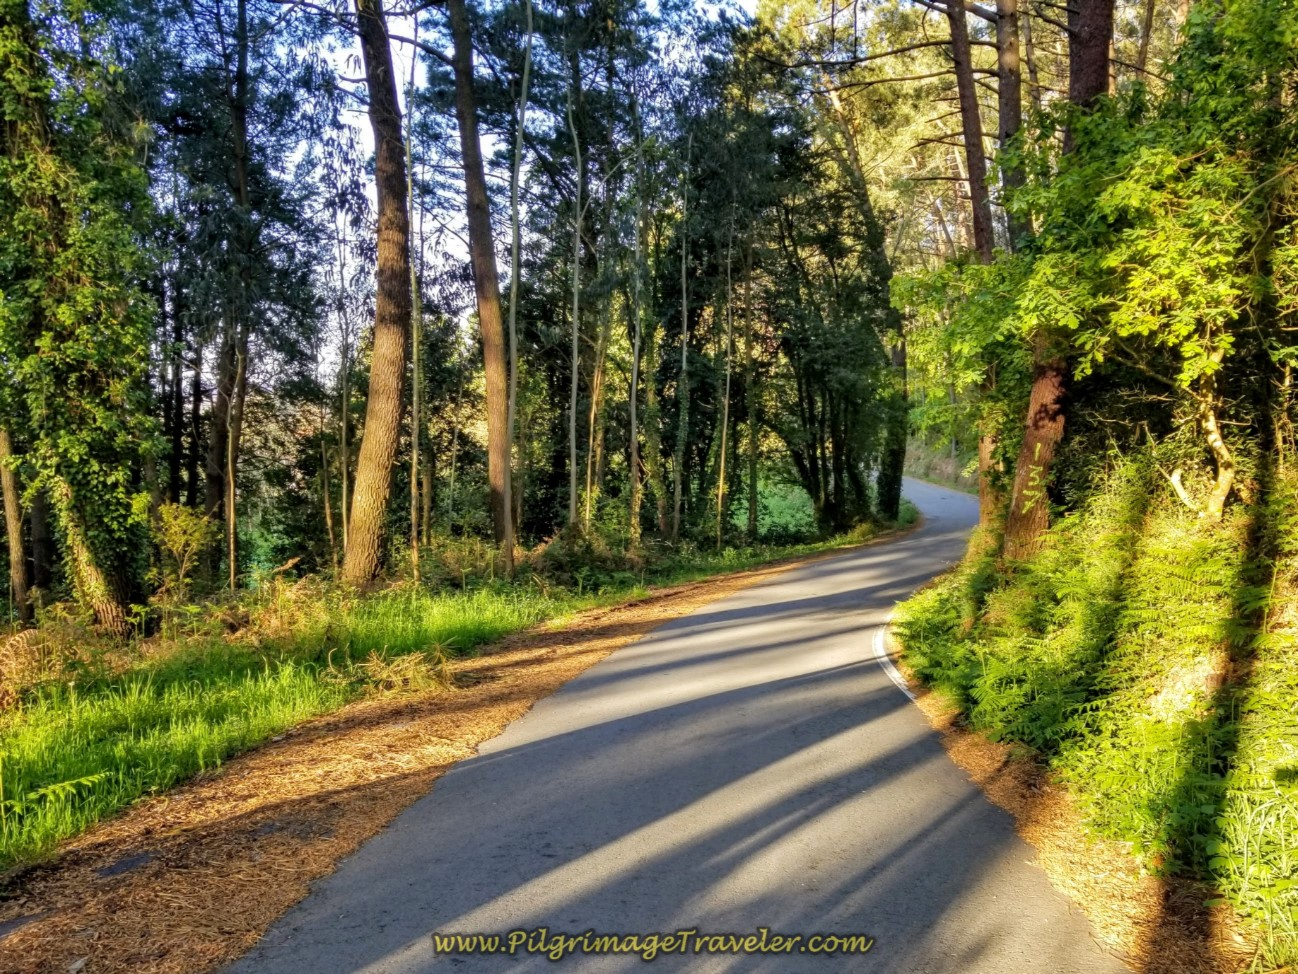 The Paved Camino Inglés Through Forest on Day Six